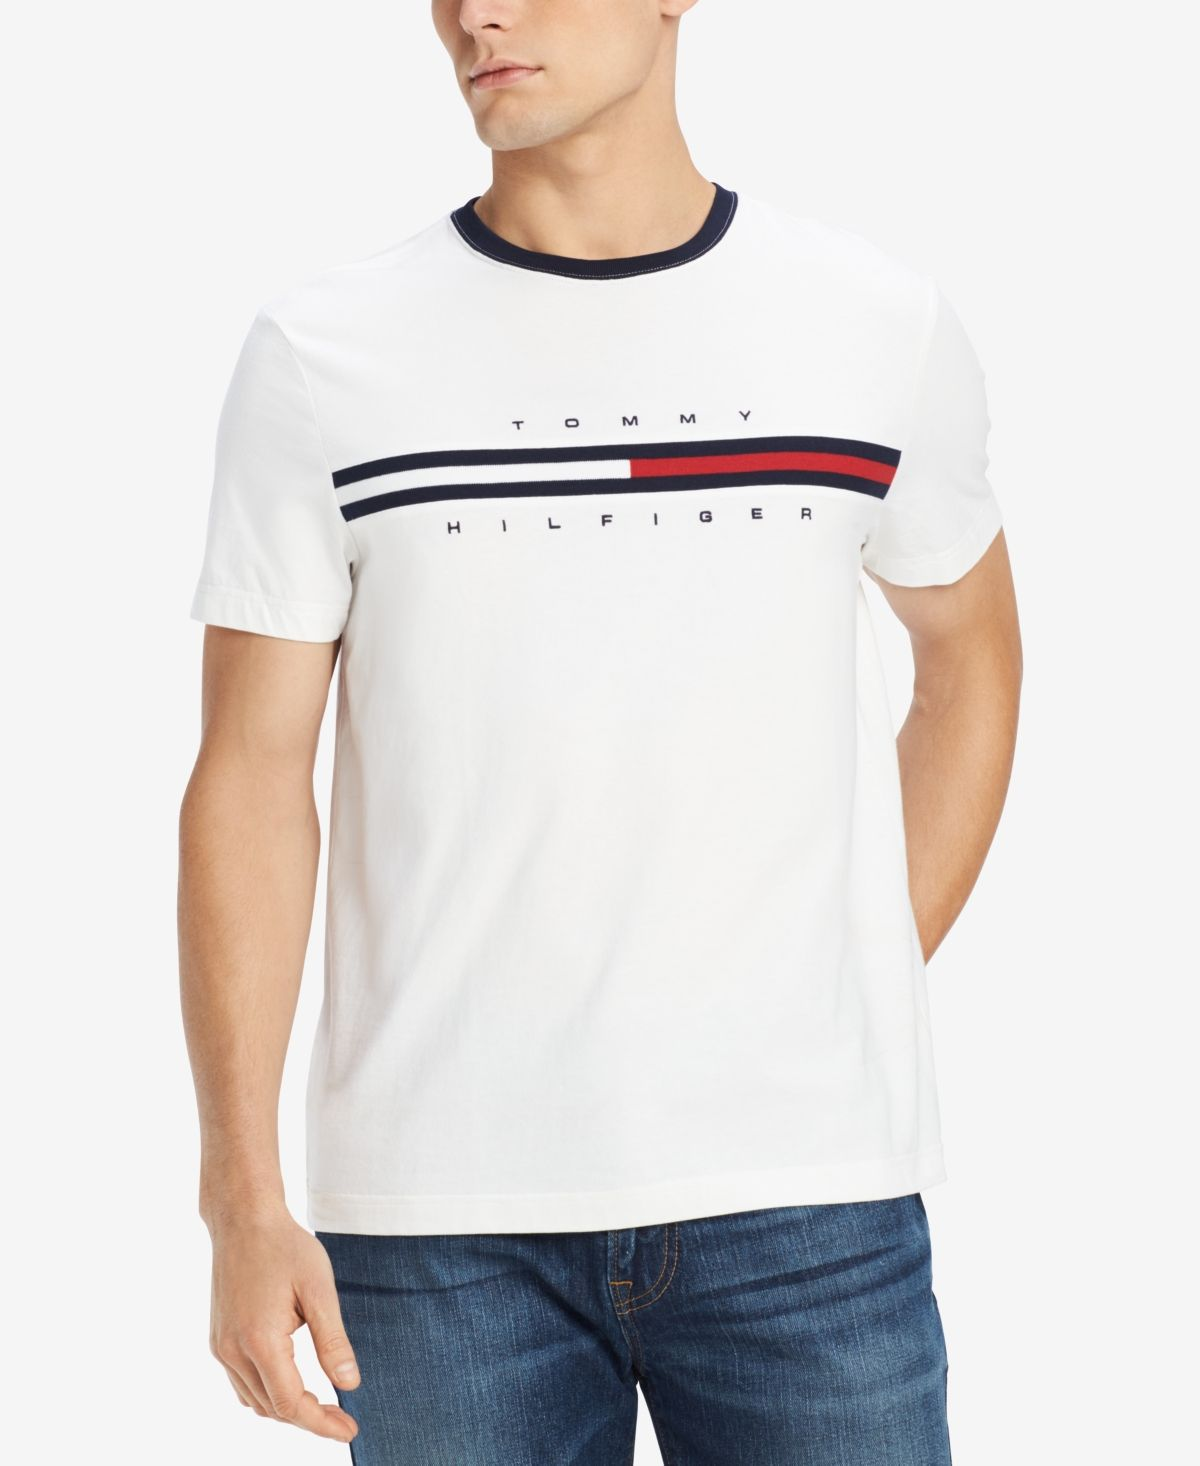 Tommy Hilfiger Mens Big and Tall T Shirt with Pocket